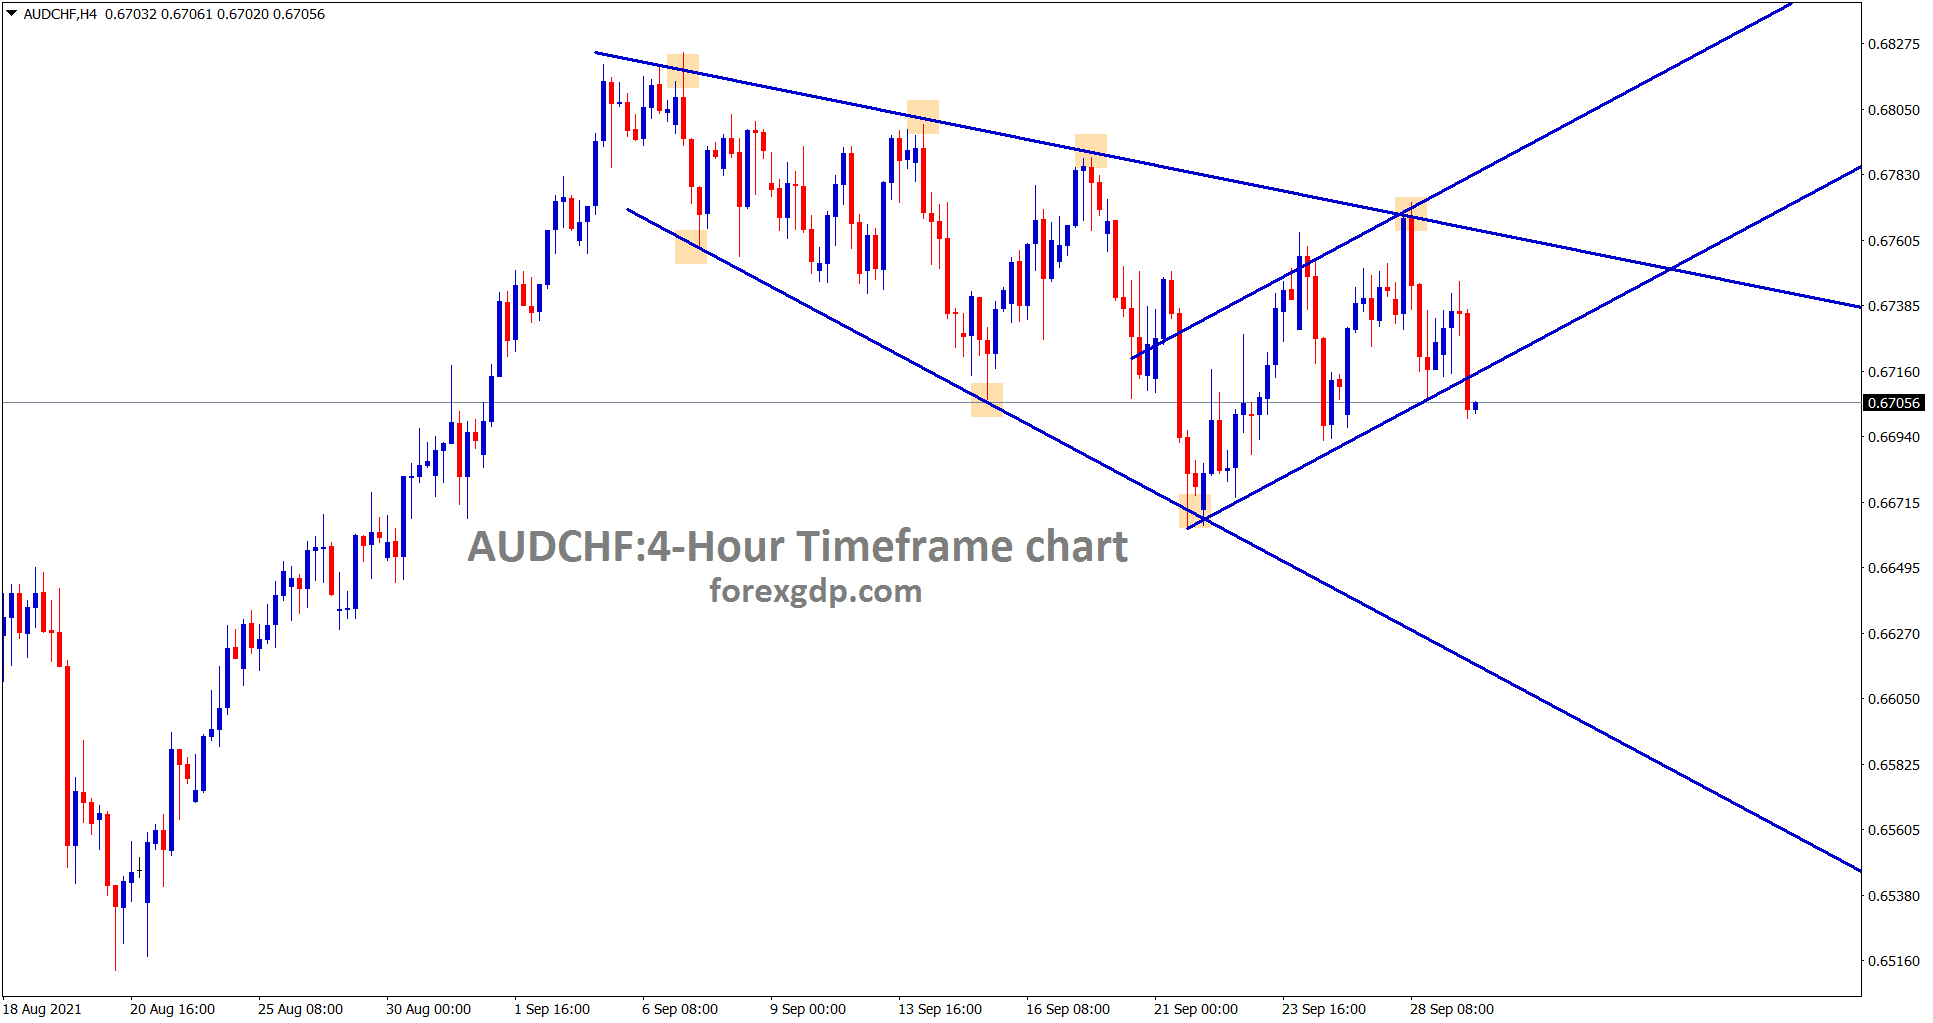 AUDCHF is moving in an Expanding channel and recently trying to break the minor ascending channel